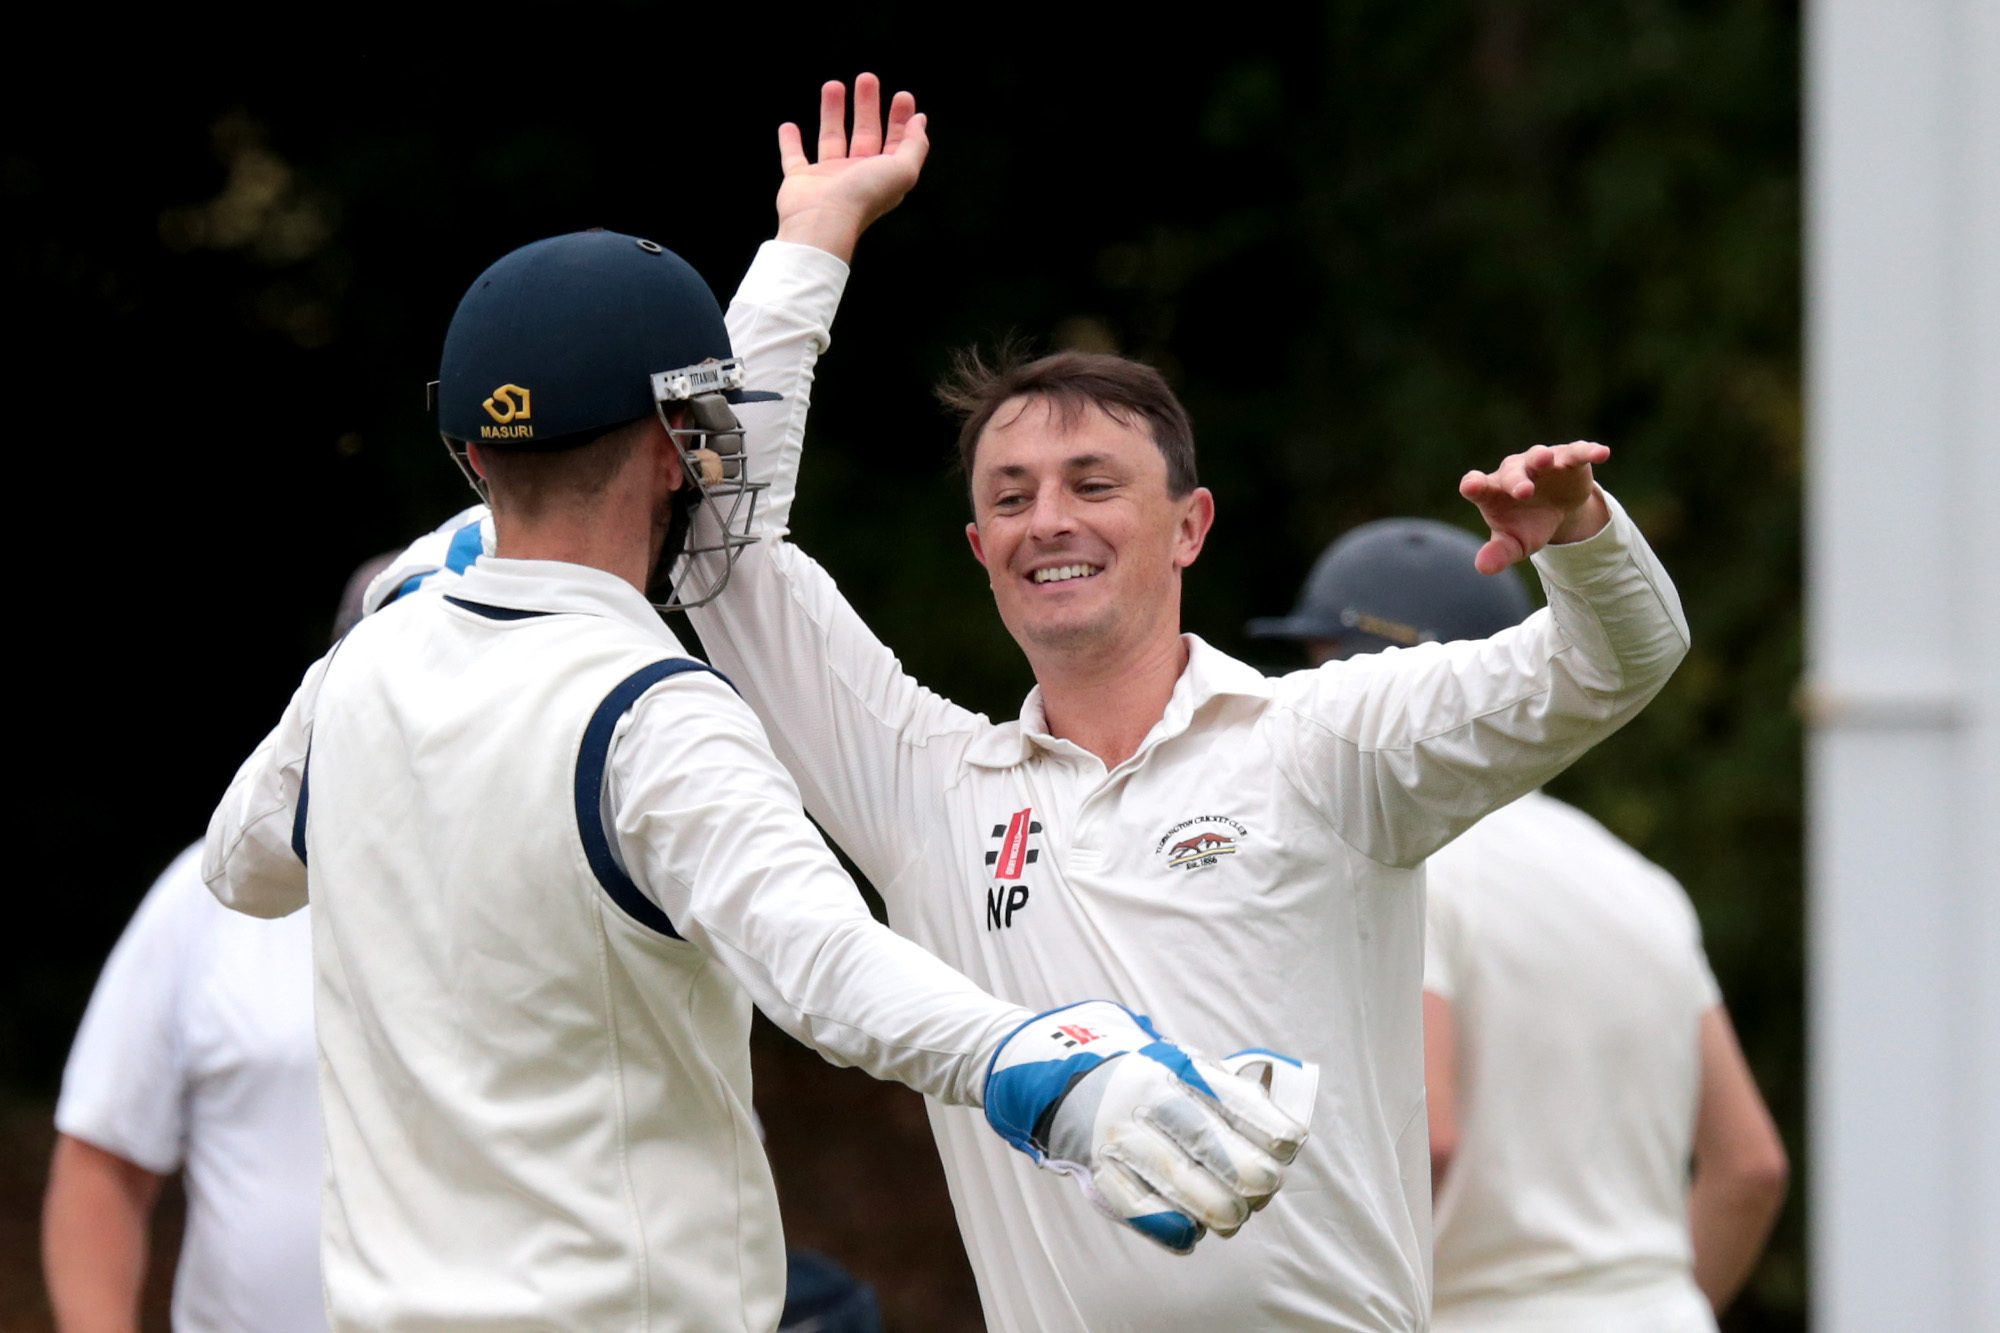 Tiddington's Nick Pykett celebrates bowling Cumnor's James Lee in their Division 1 game Picture: Ric Mellis